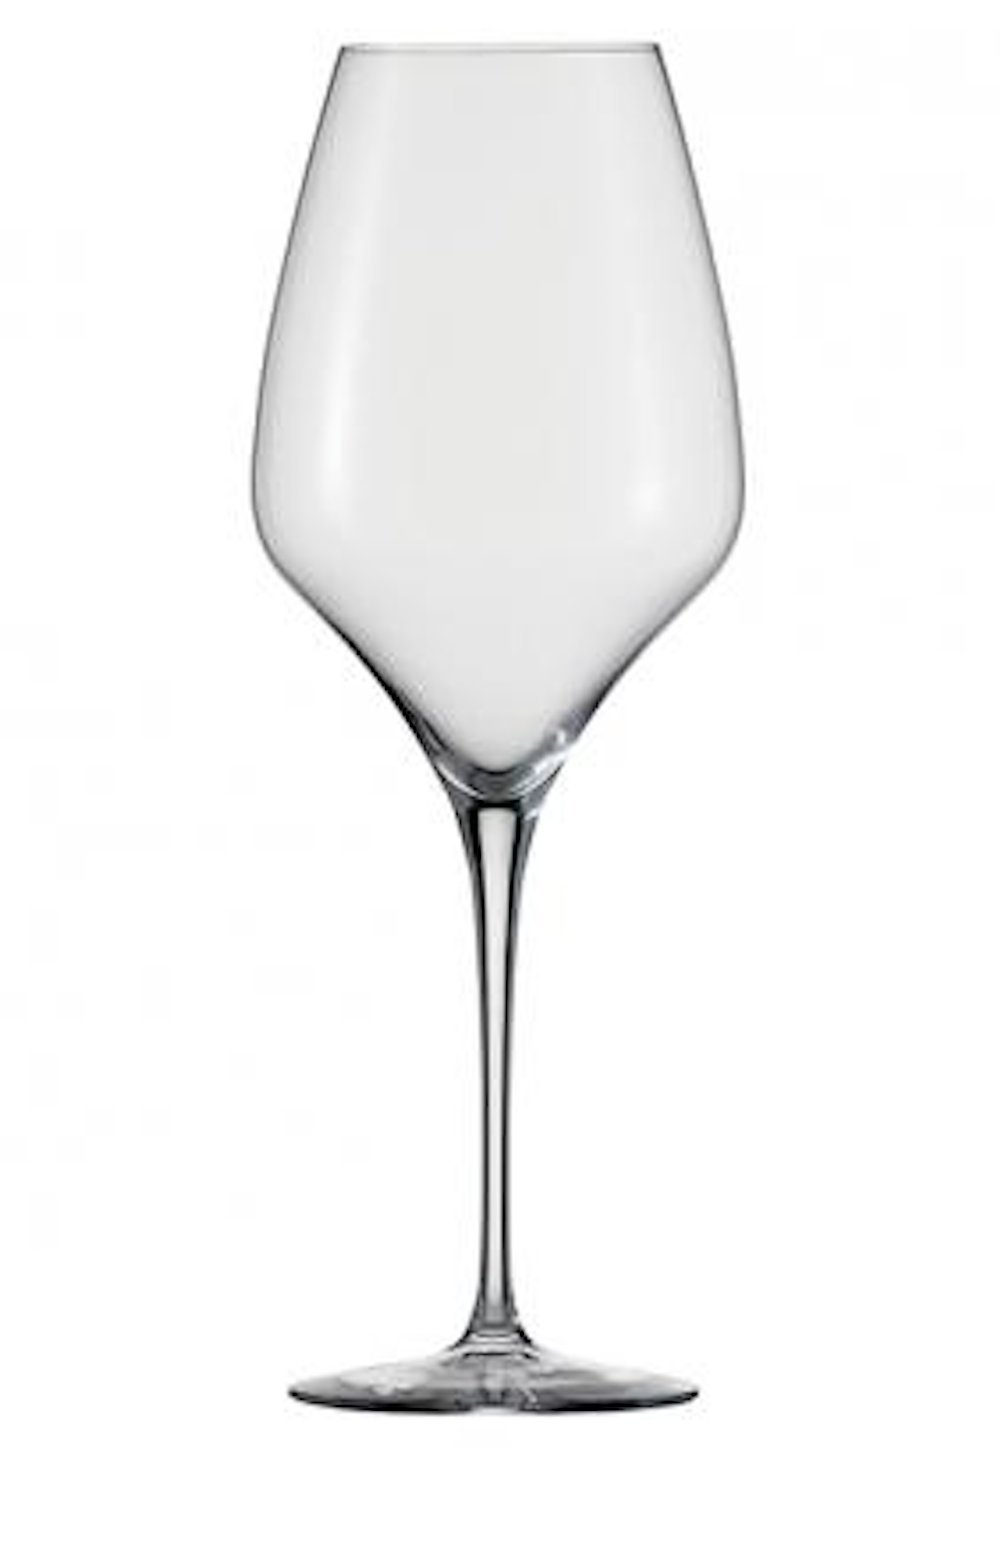 Schott Zwiesel 1872 The First Full Bodied Aged Red Wine Glasses - Set of 2